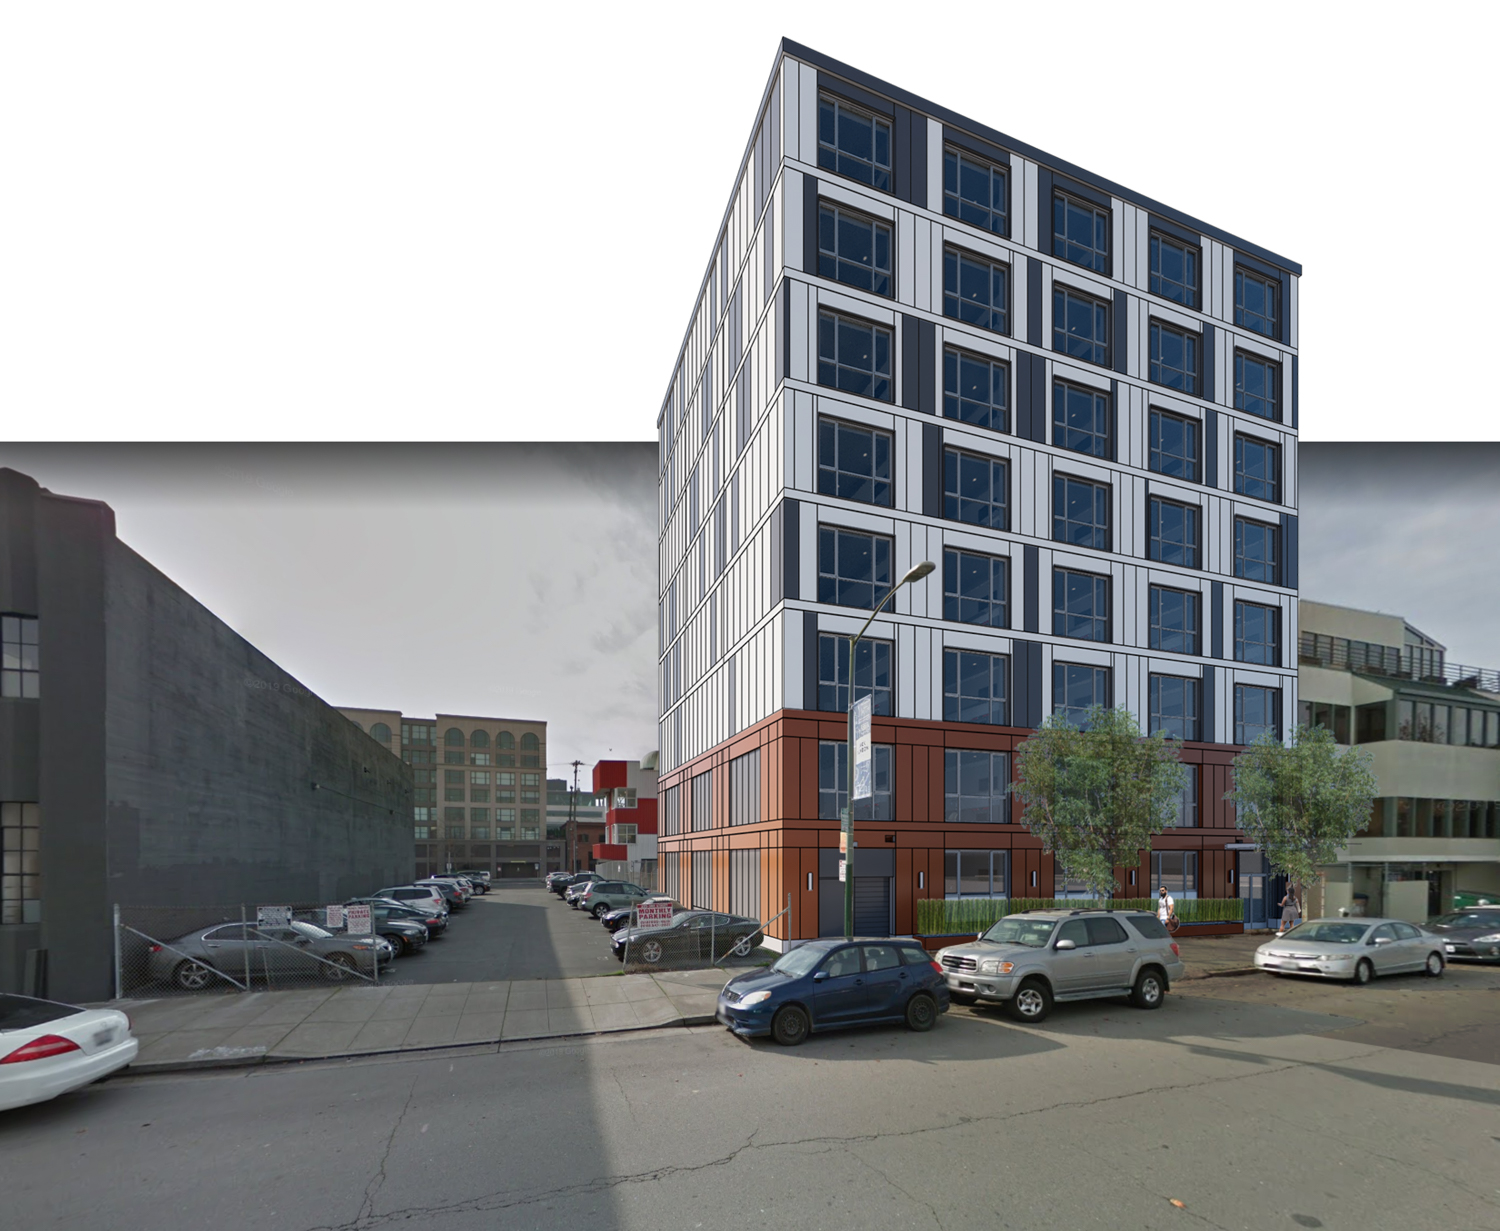 335 3rd Street, rendering by R2 Building